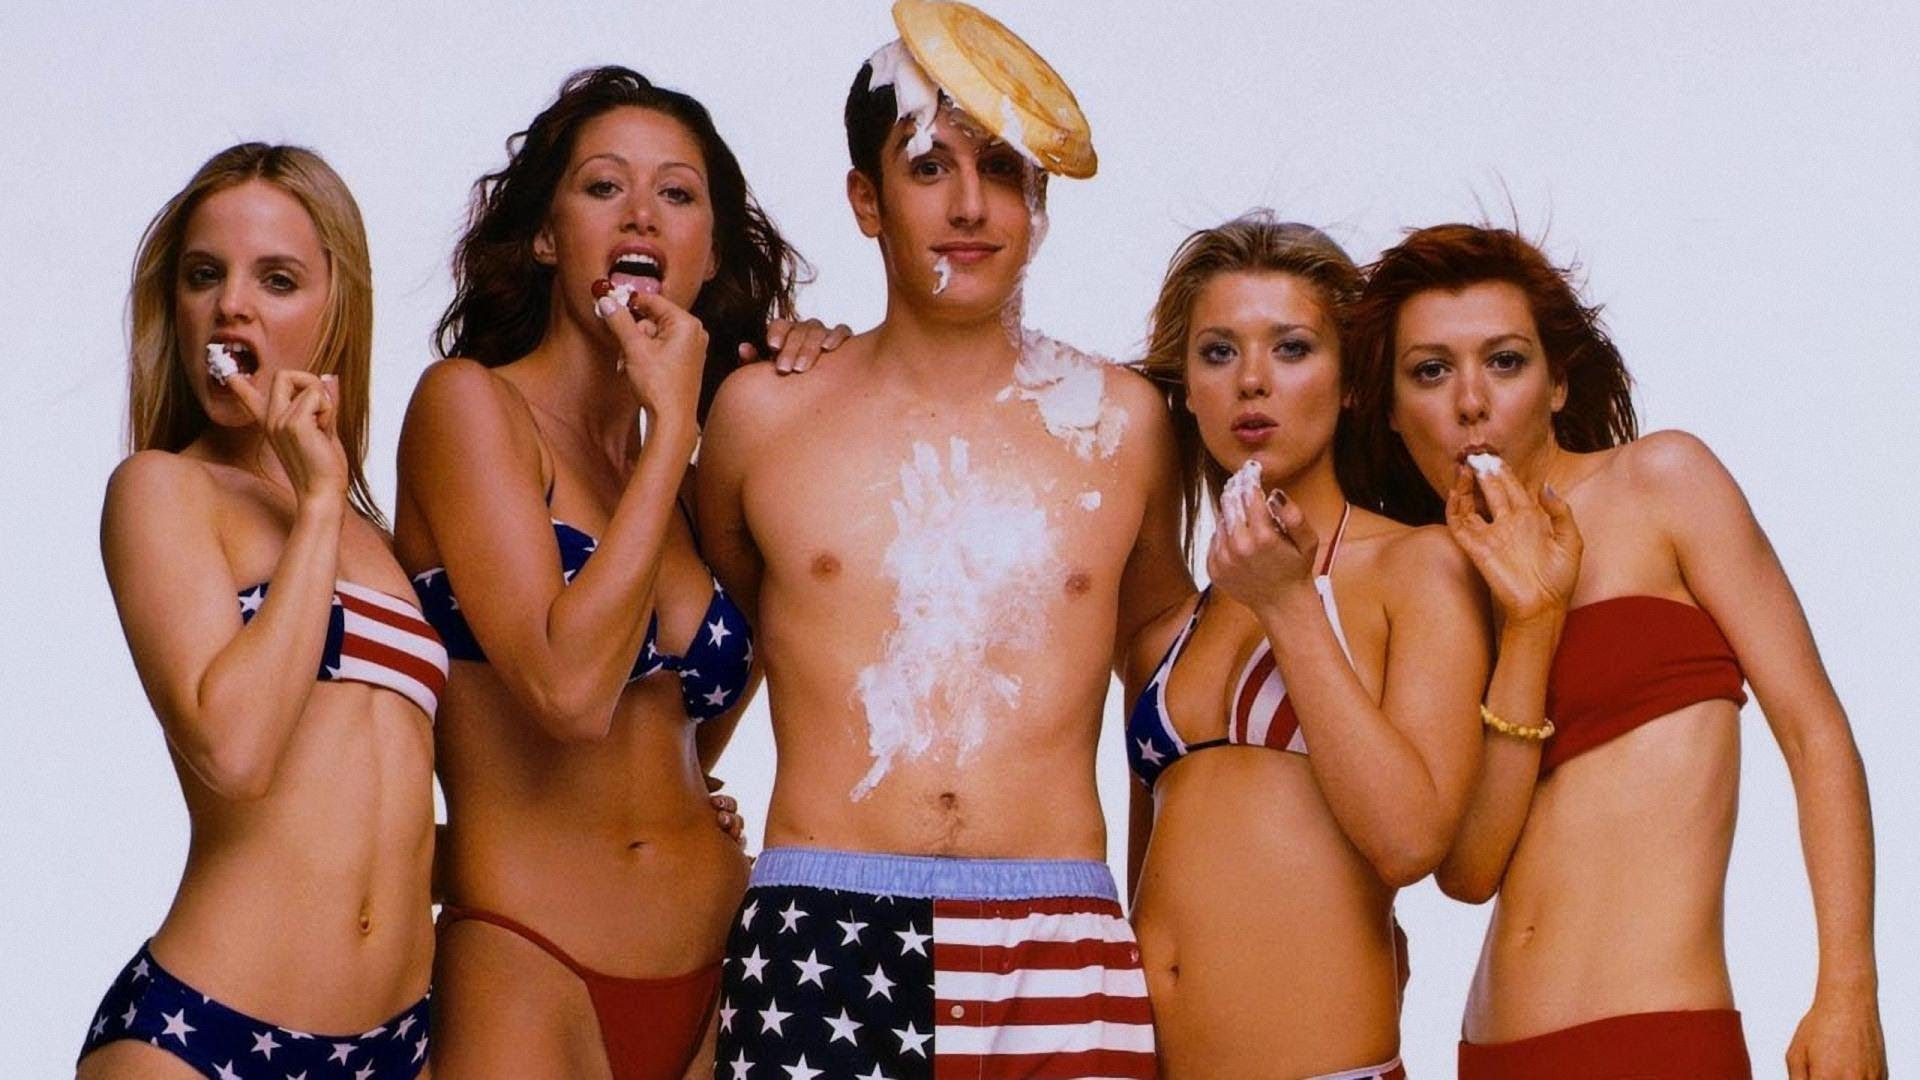 Photo of 5 Reasons Why Every Virgin Must Watch American Pie Series